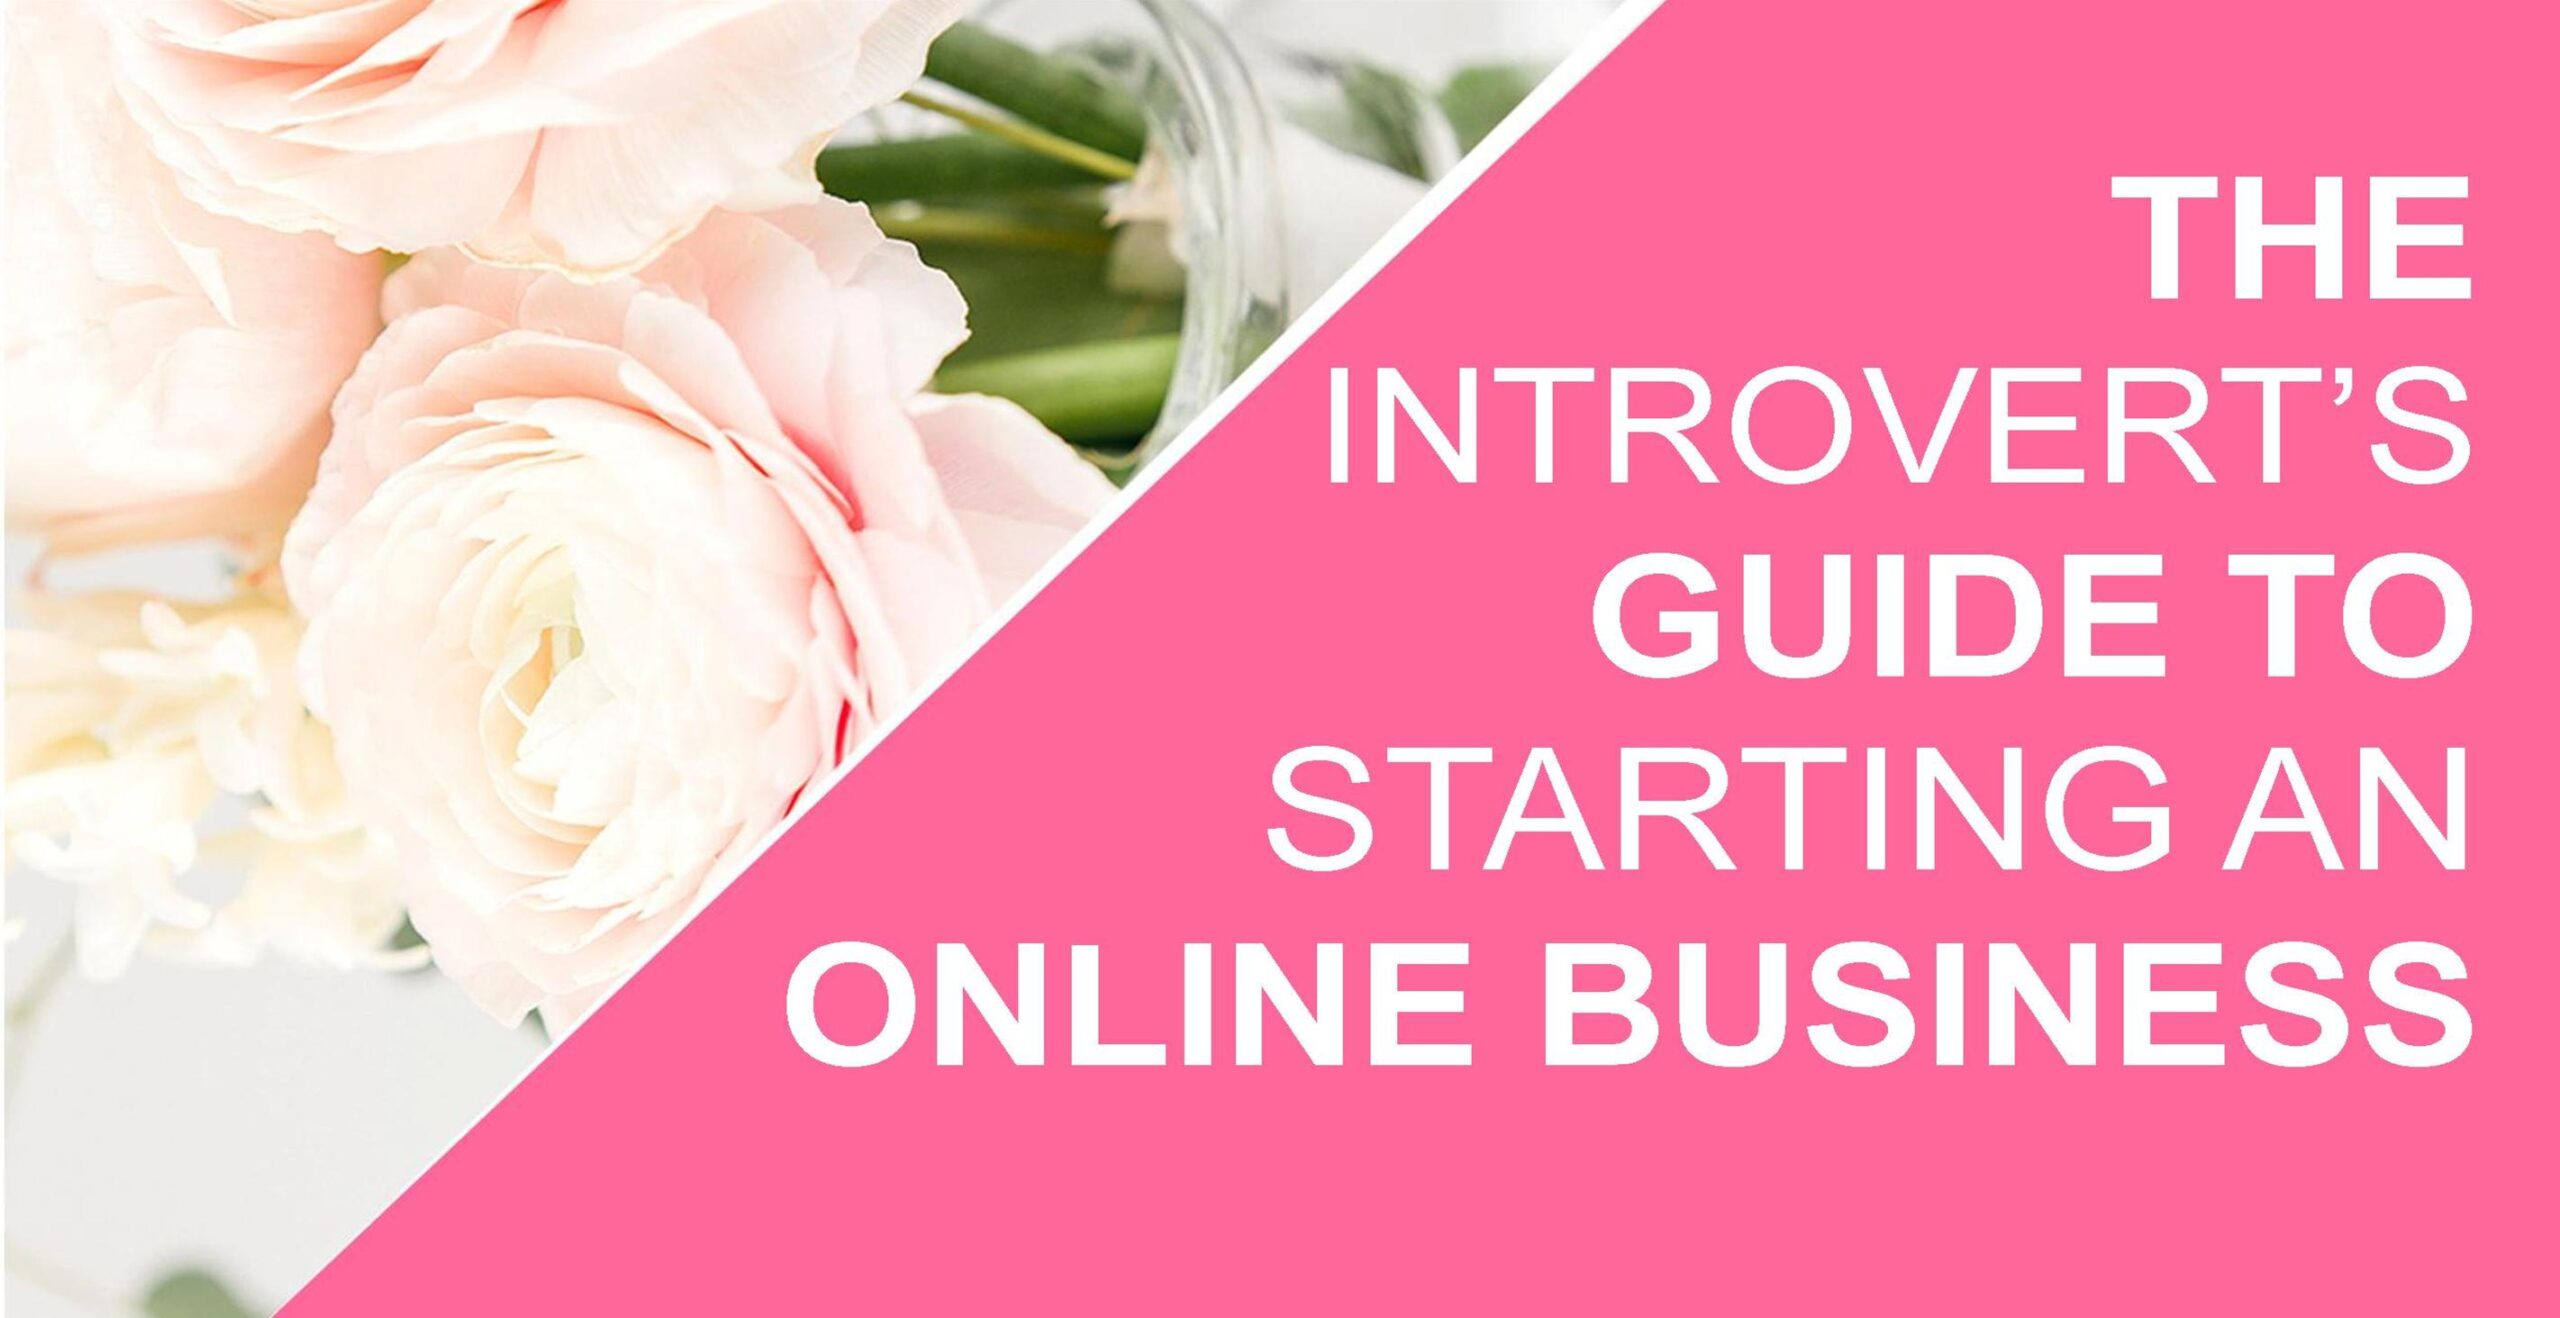 The Introvert's Guide to Starting An Online Business